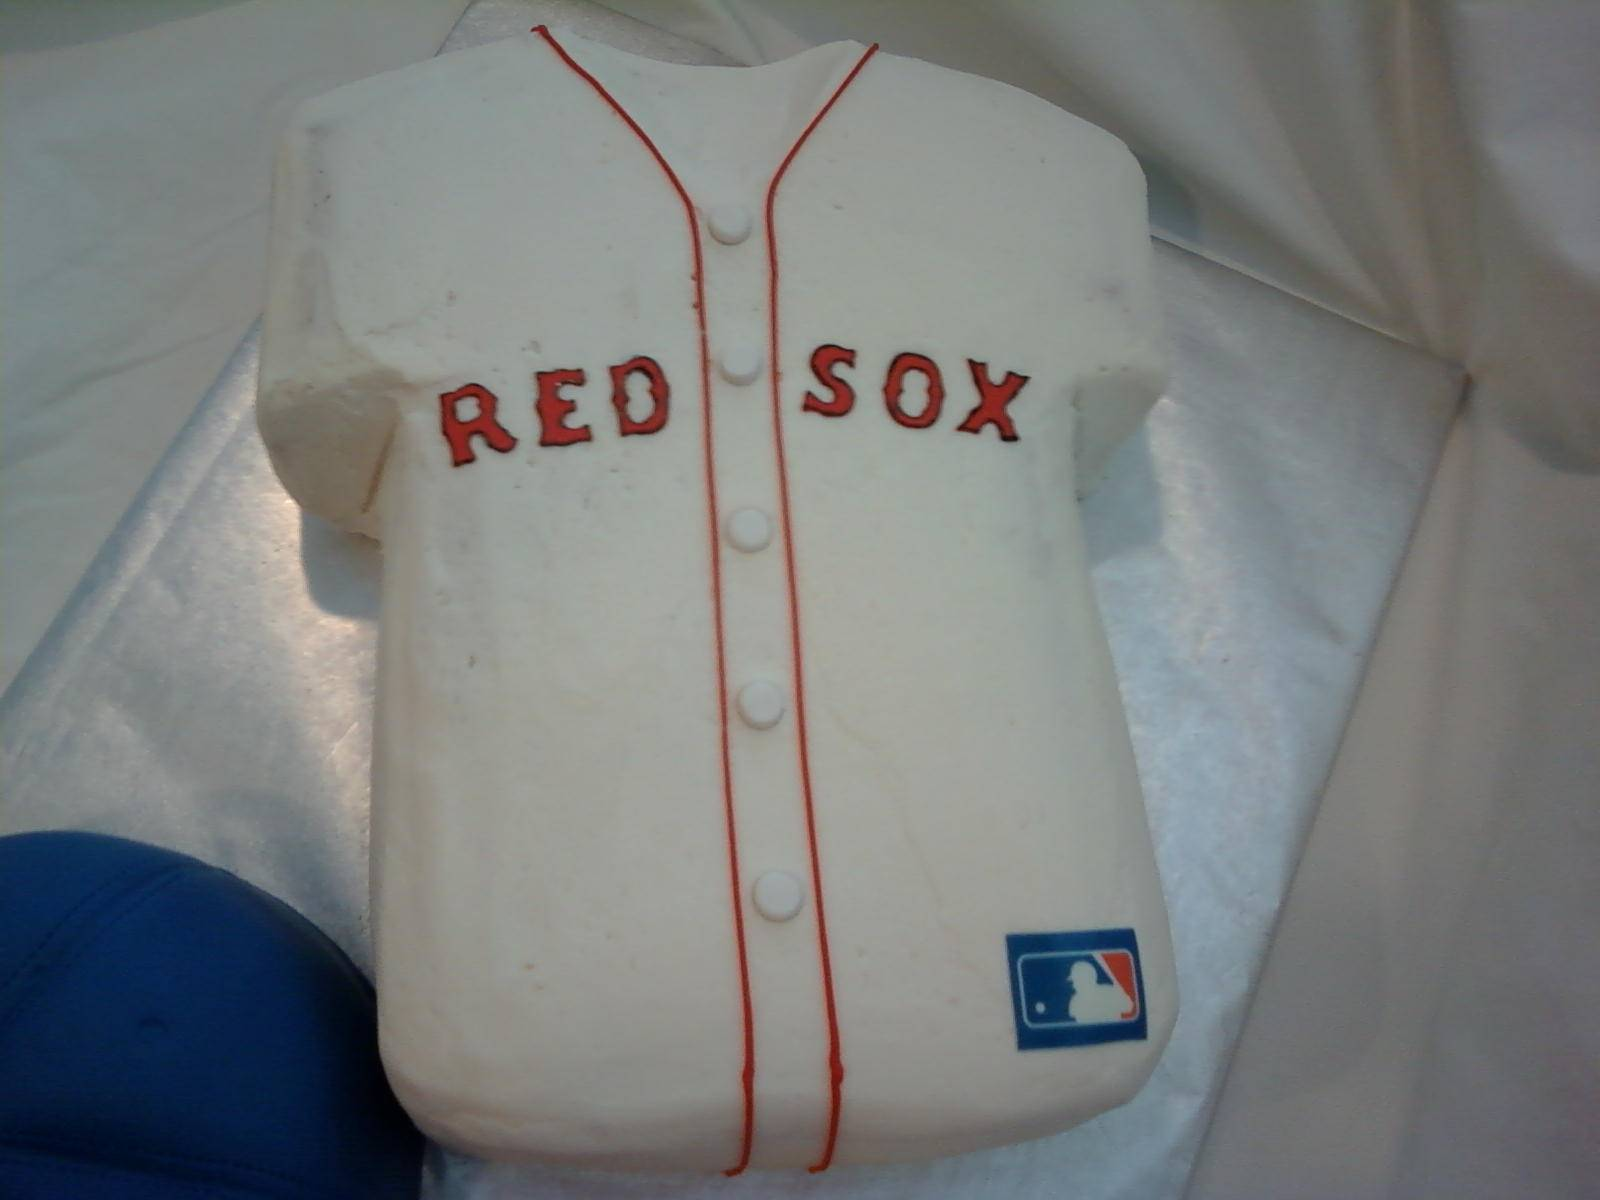 Red Sox jersey